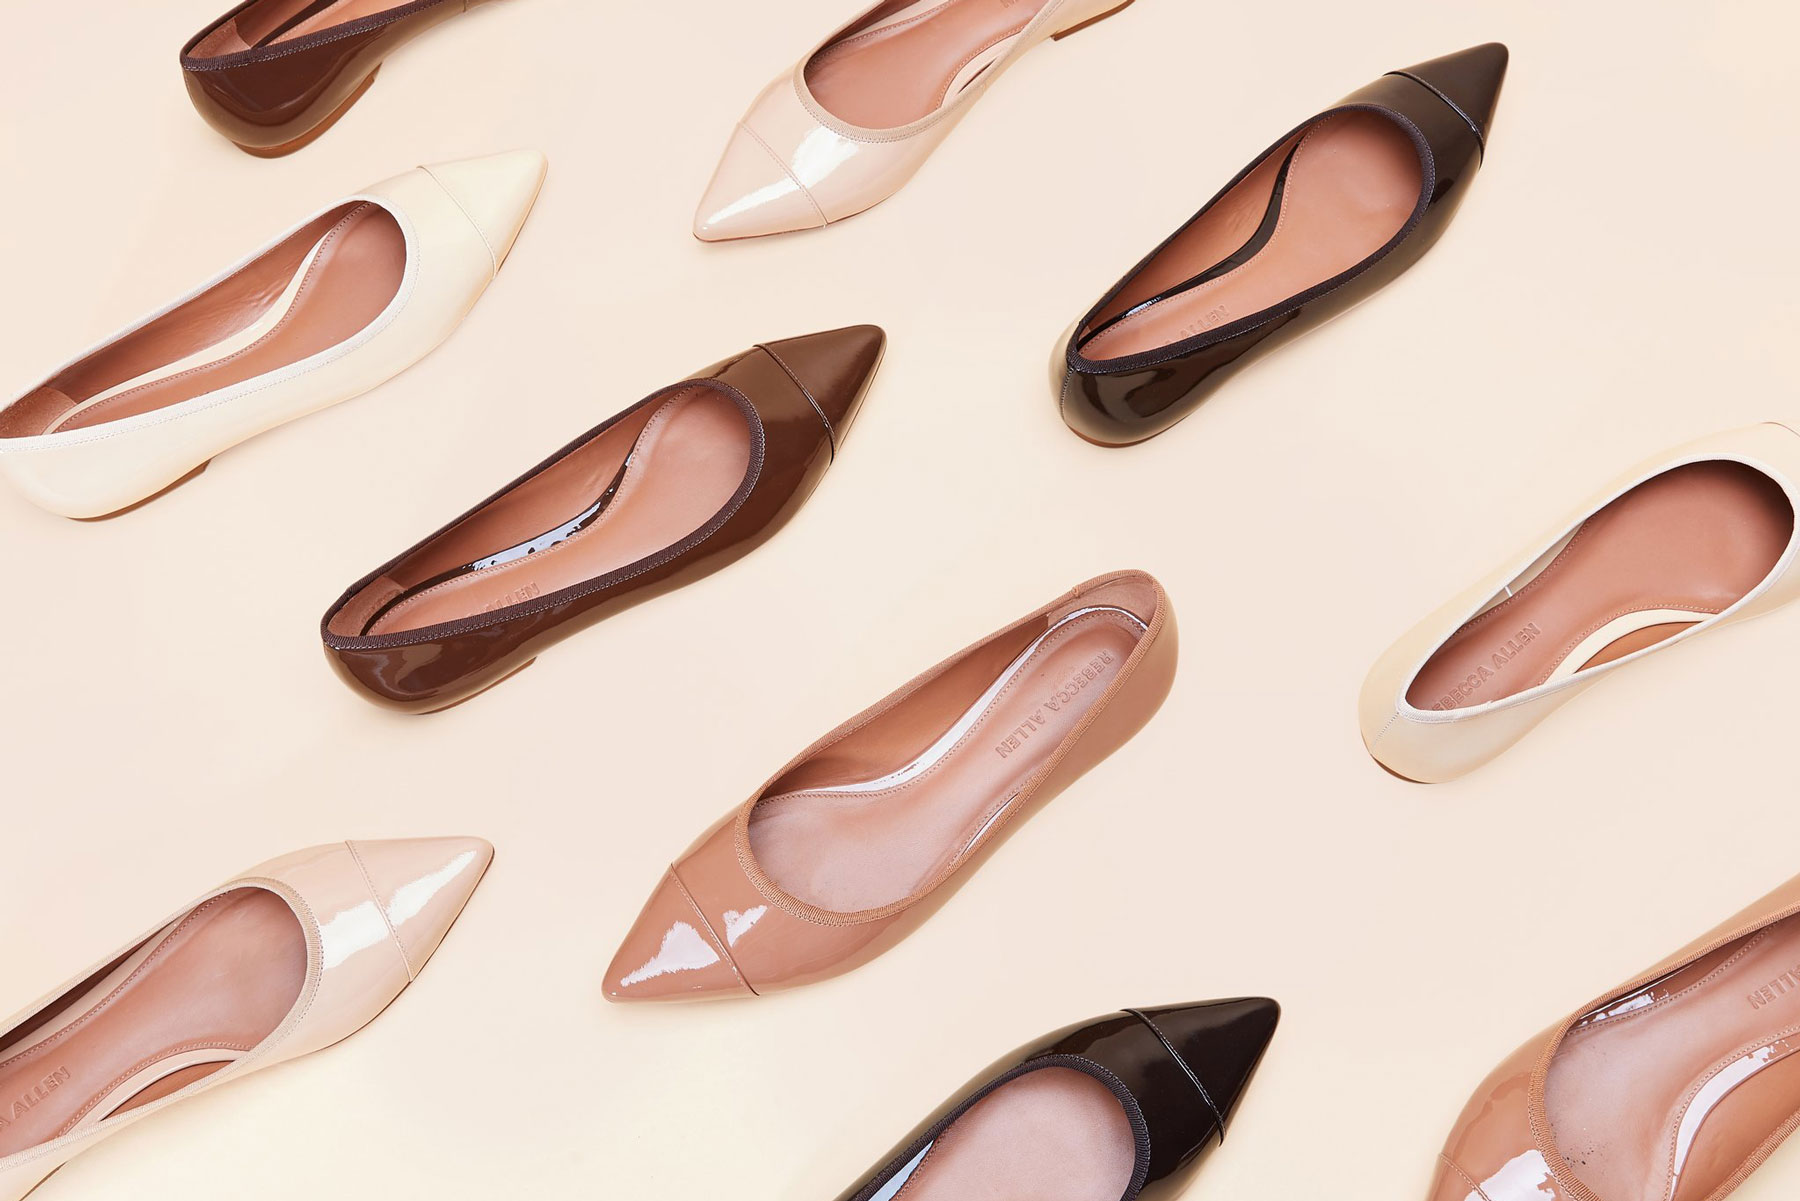 various ballet flats in nude shades